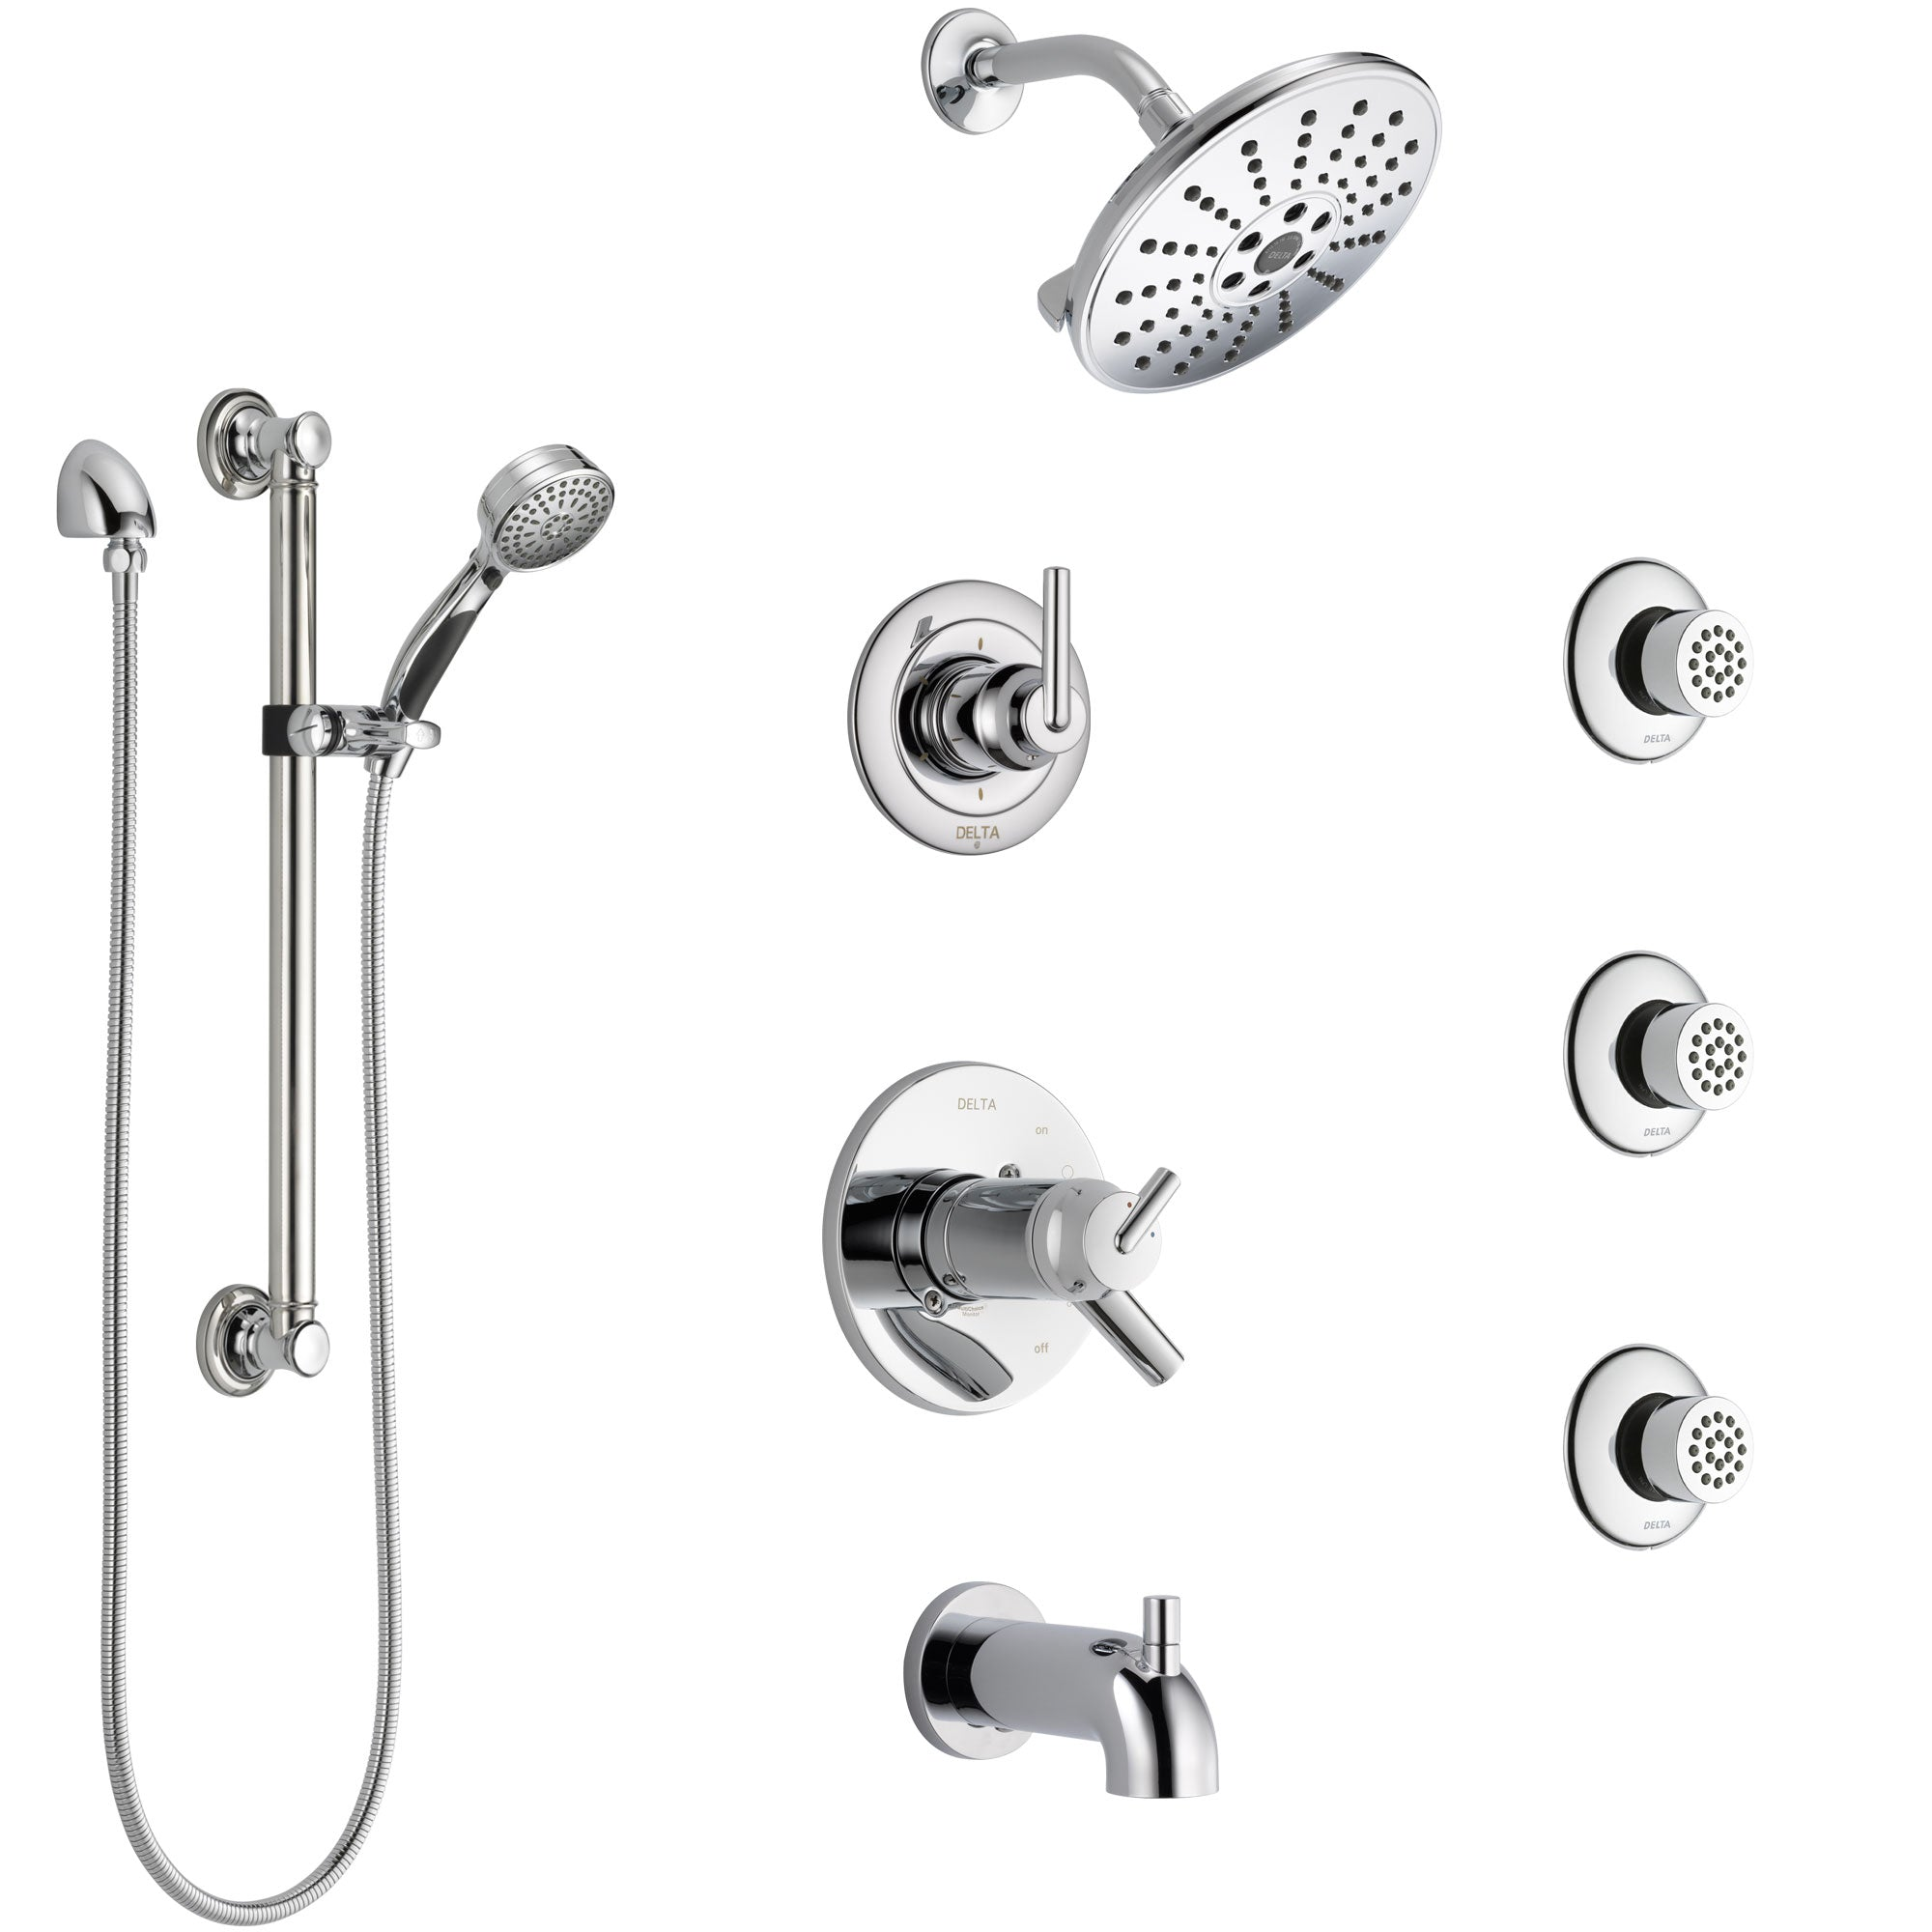 Delta Trinsic Chrome Dual Thermostatic Control Tub and Shower System, Diverter, Showerhead, 3 Body Sprays, and Hand Shower with Grab Bar SS17T45911